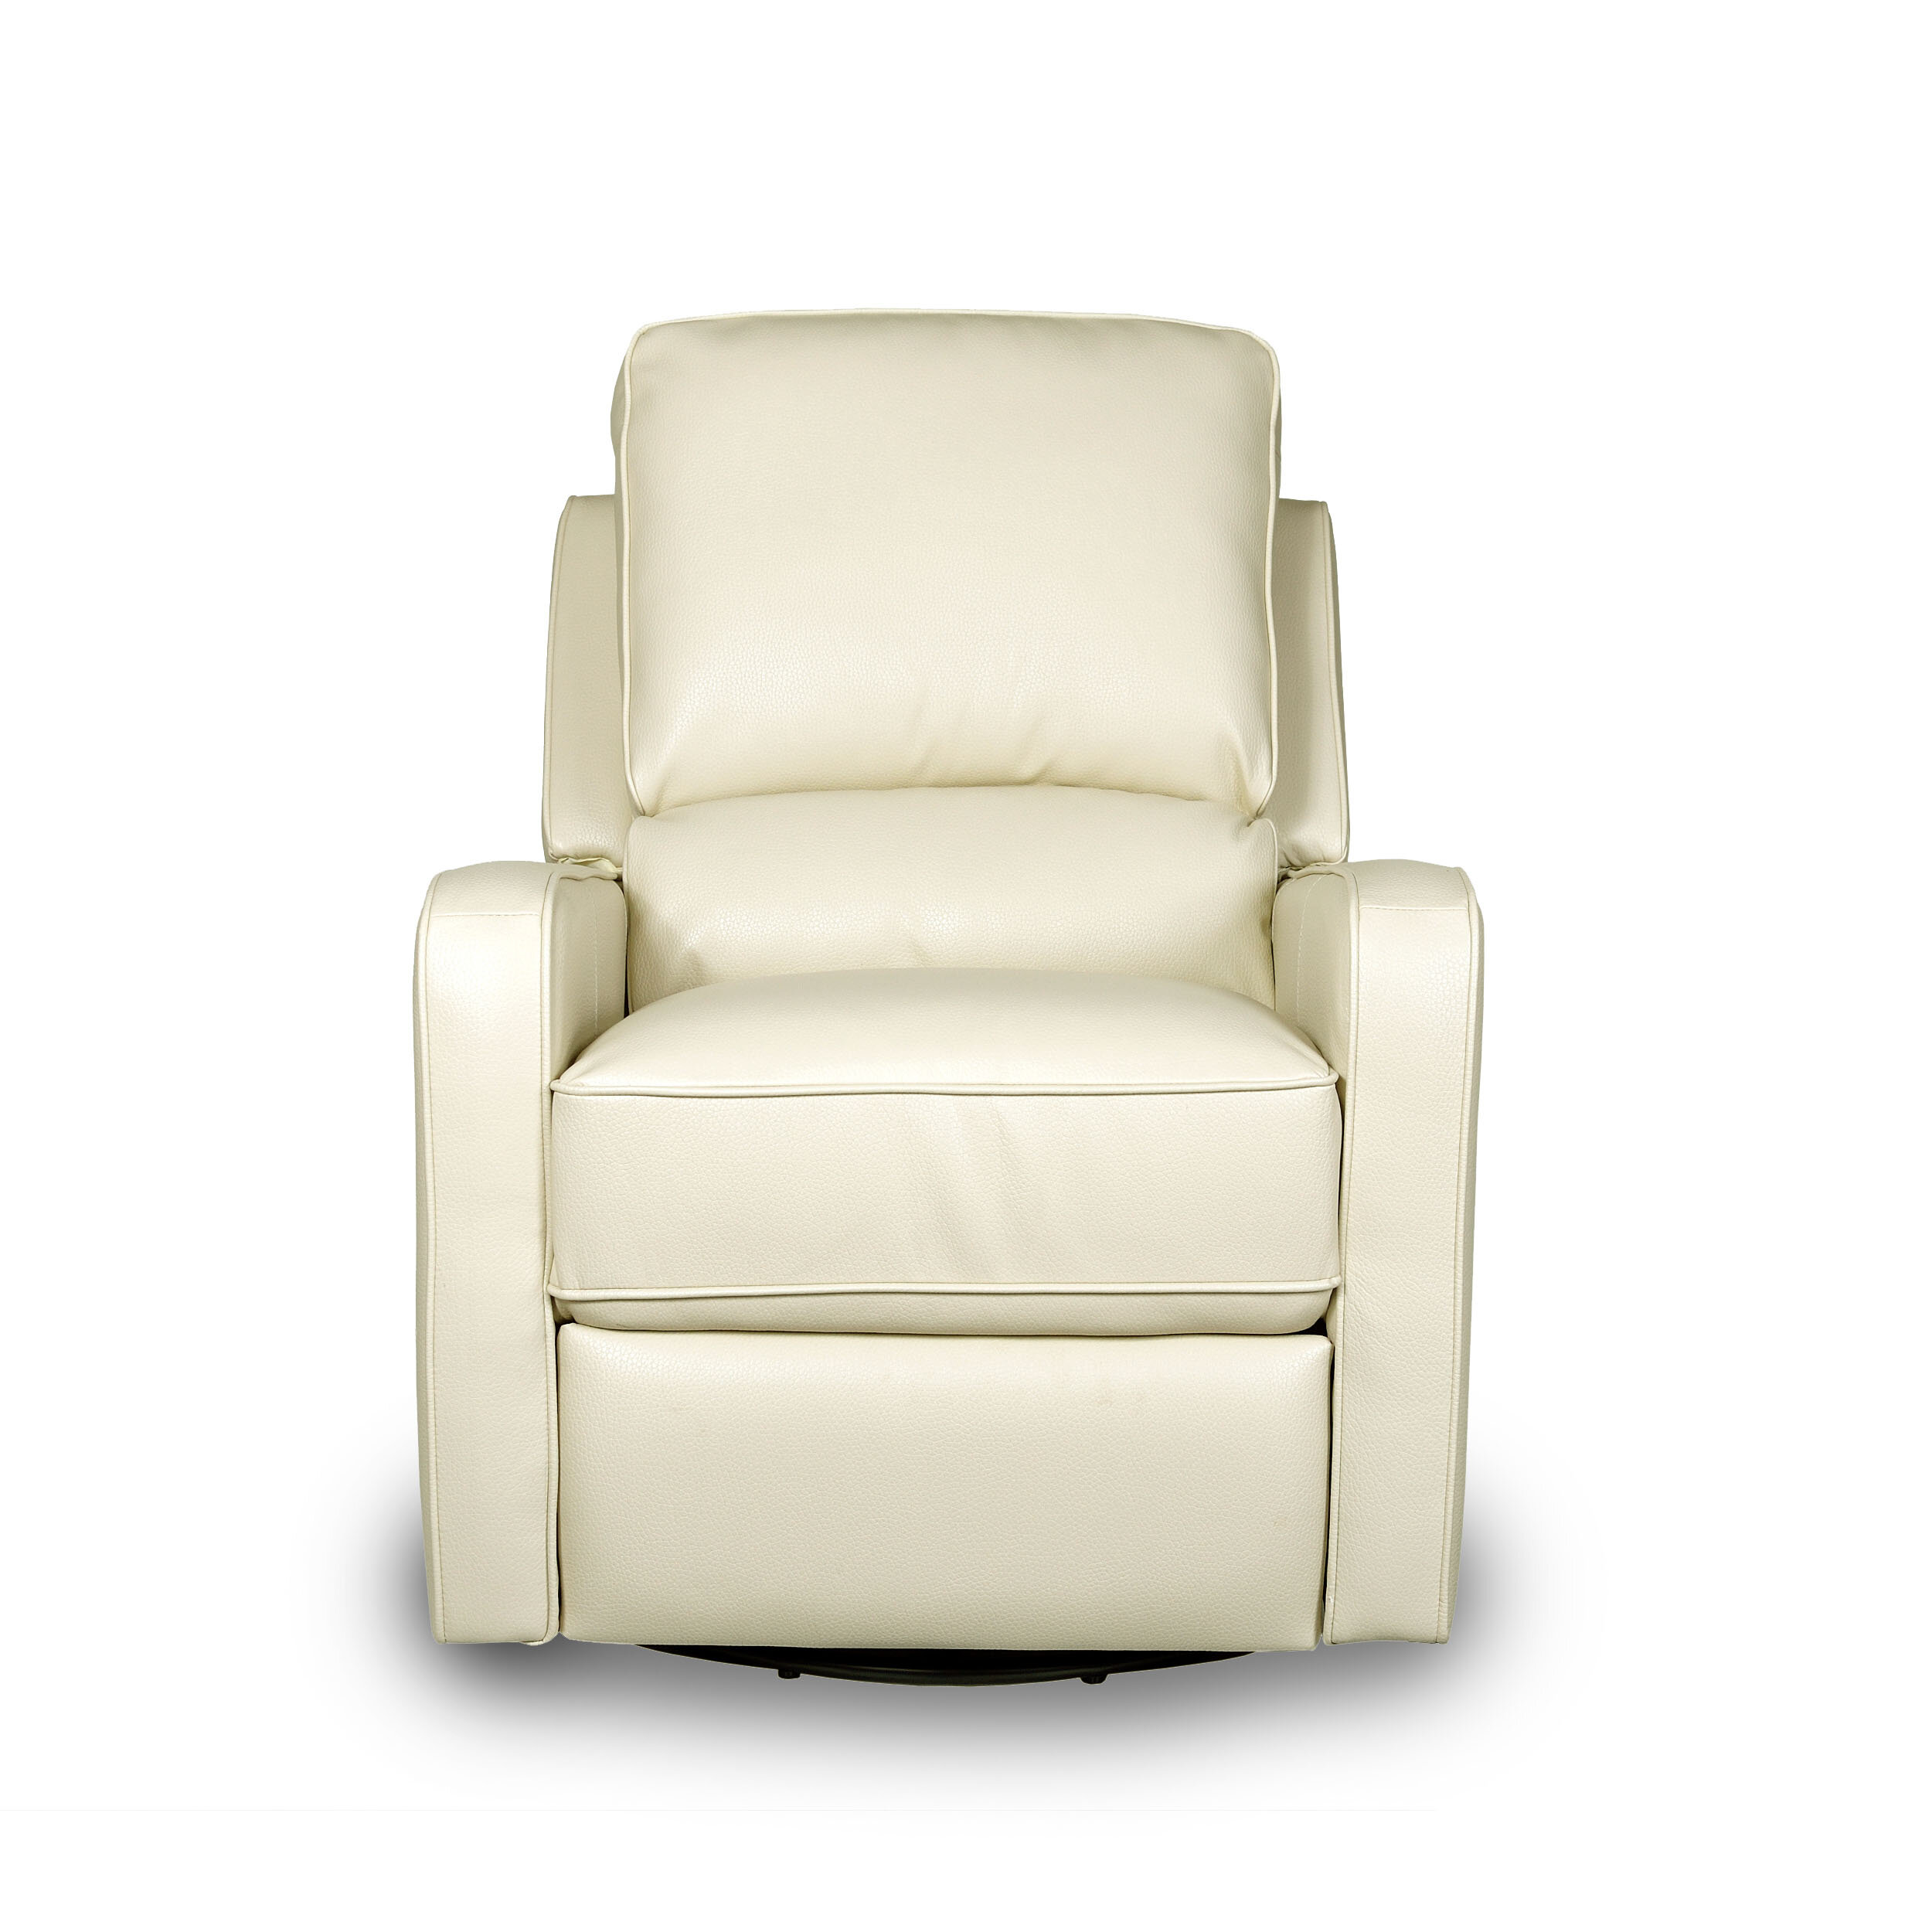 finley zoom stone product recliner inside fit chairs r best babies glider us swivel